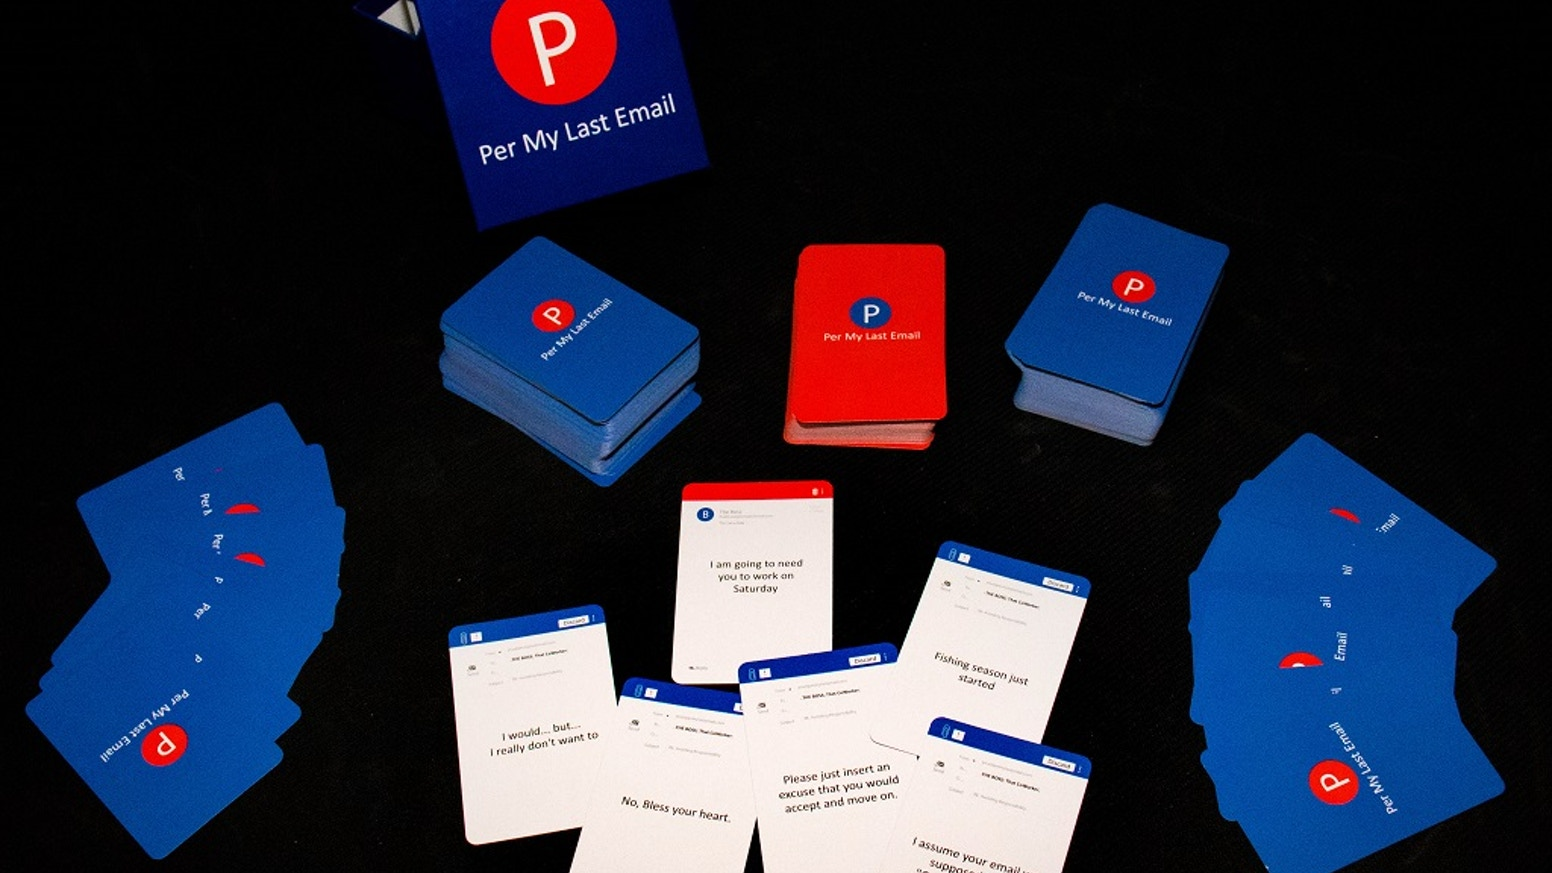 The Casual Party Game  for Disgruntled Office Workers